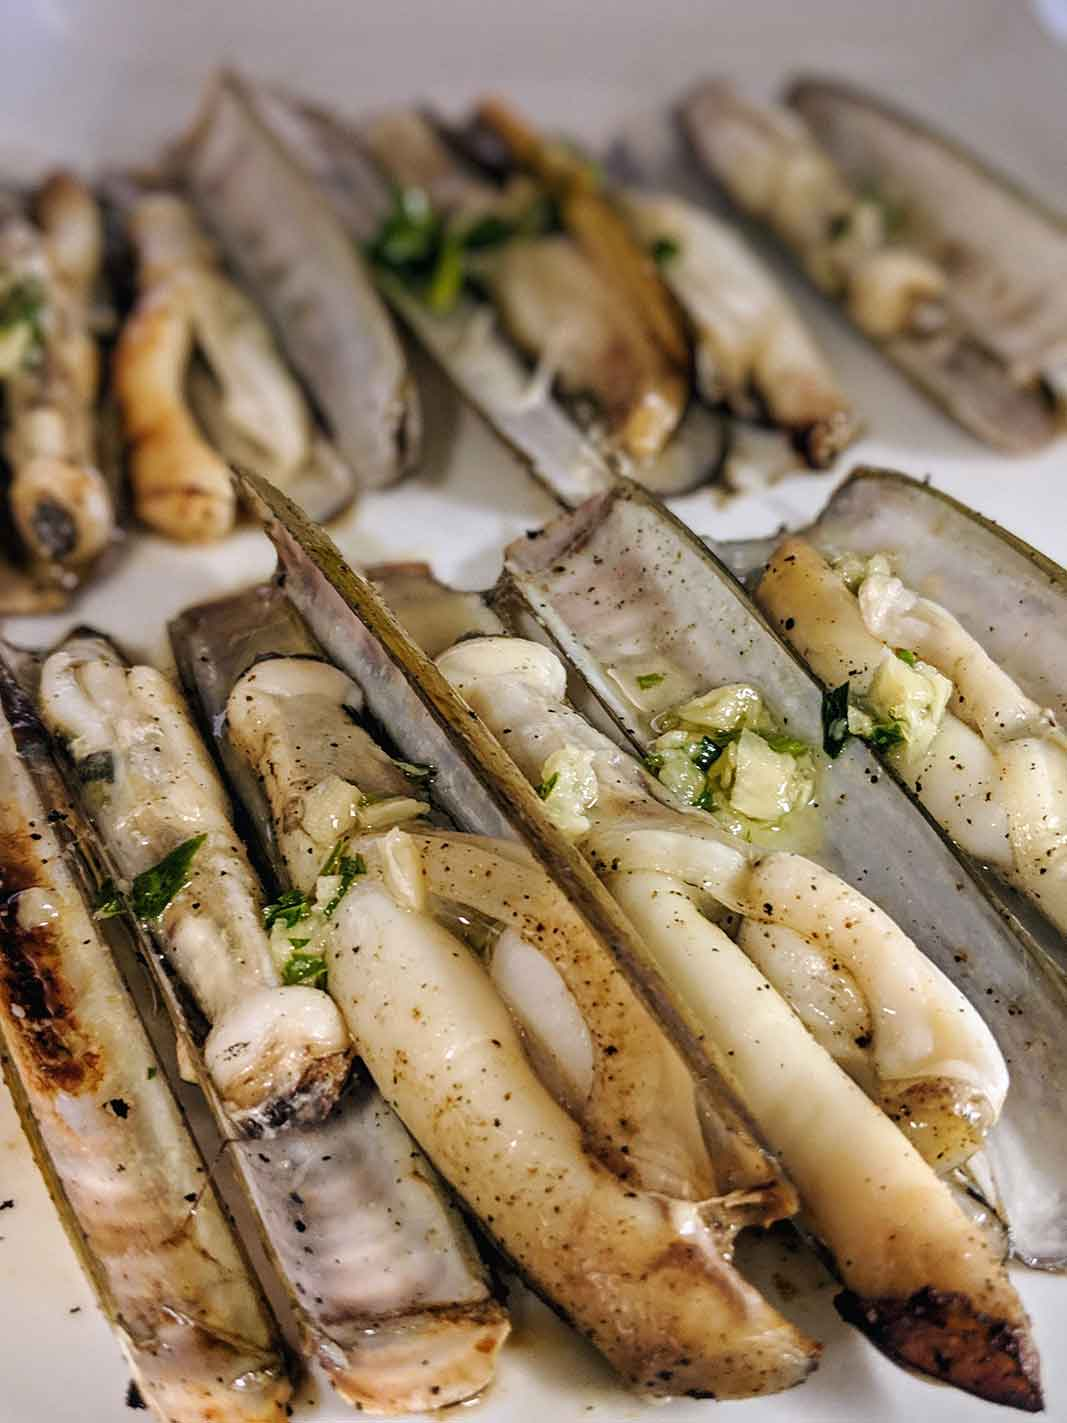 Grilled razor clams with garlic and parsley